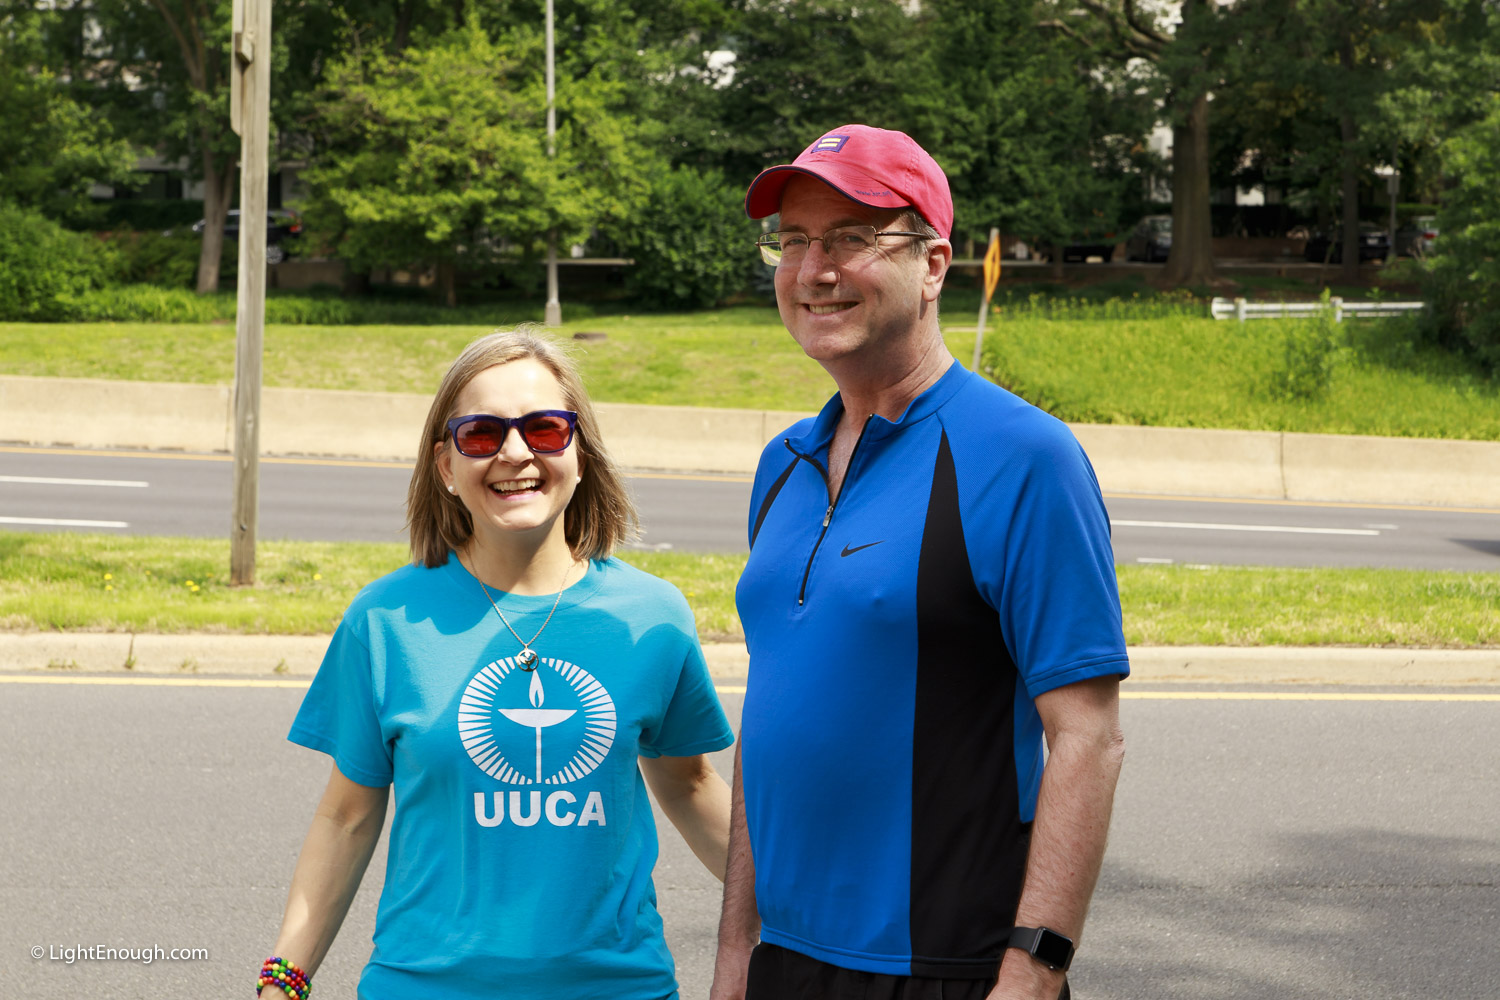 Elizabeth & Bill Fogarty at UUCA Pride Flag day on Saturday June 3, 2017. Photo by John St Hilaire/LightEnough.com.